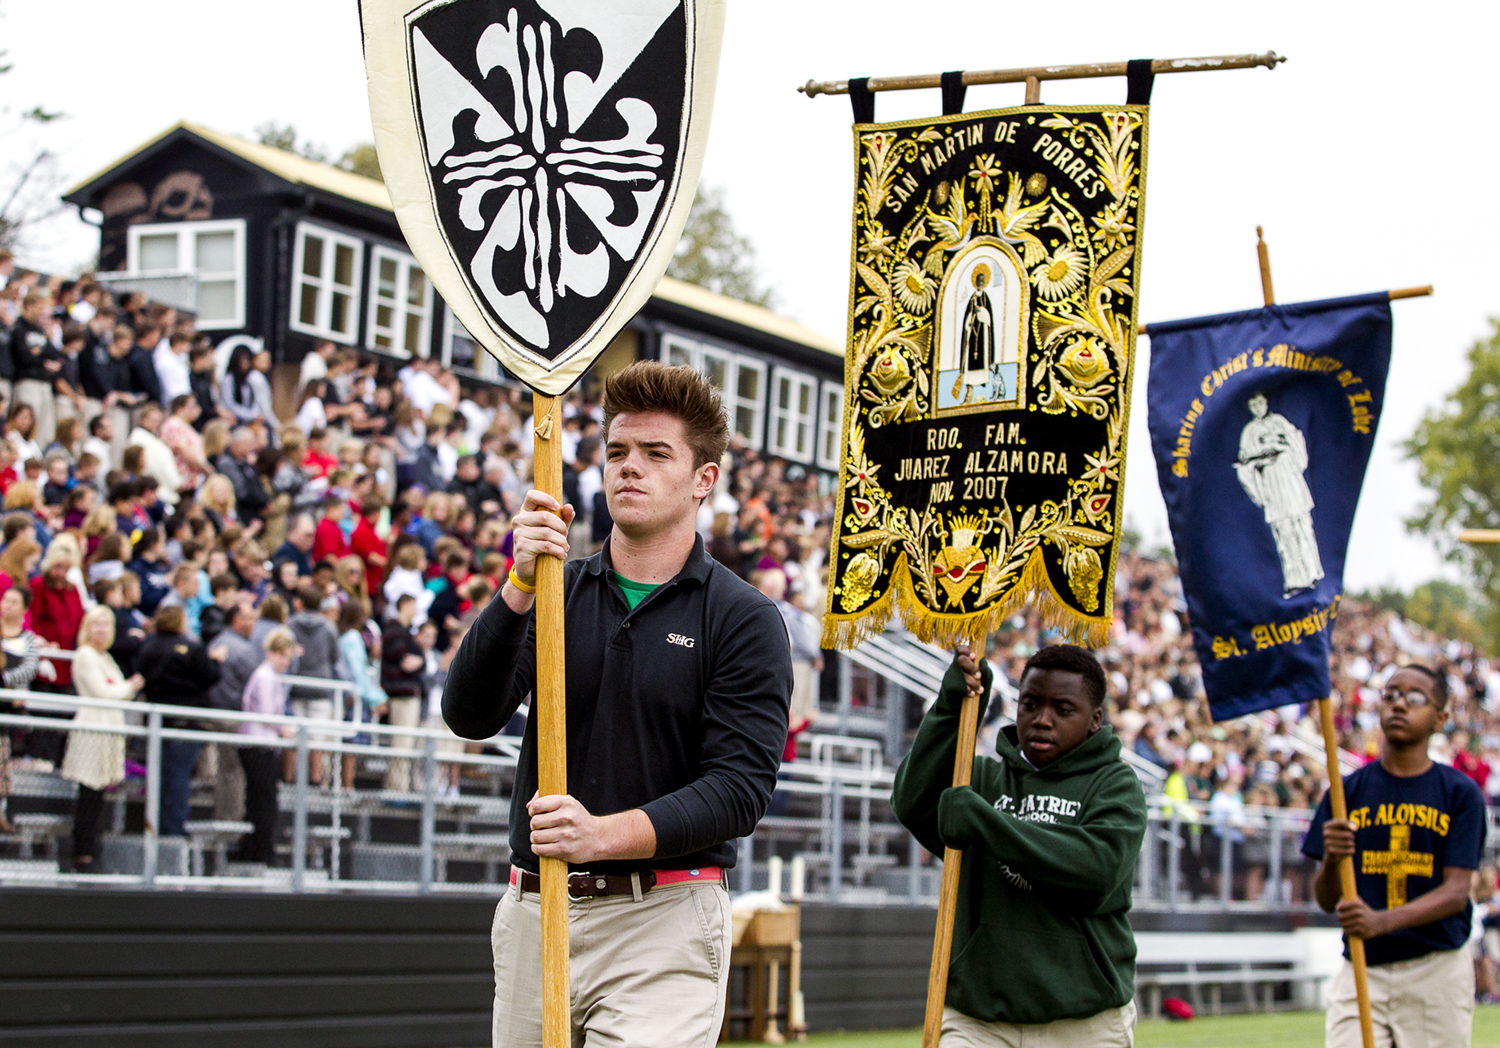 Sacred Heart-Griffin junior Sharky Martin, center, and St. Patrick's fifth grader Ashton Bacon, right, represent their schools as they march across the field during the All City Catholic Schools Mass at the Sacred Heart-Griffin Sports Complex, Monday, Oct. 5, 2015, in Springfield, Ill. The Mass gathers students from the city Catholic schools and was lead by Bishop Thomas Paprocki delivering a message of how the students can lift each other up to help everyone succeed. Justin L. Fowler/The State Journal-Register